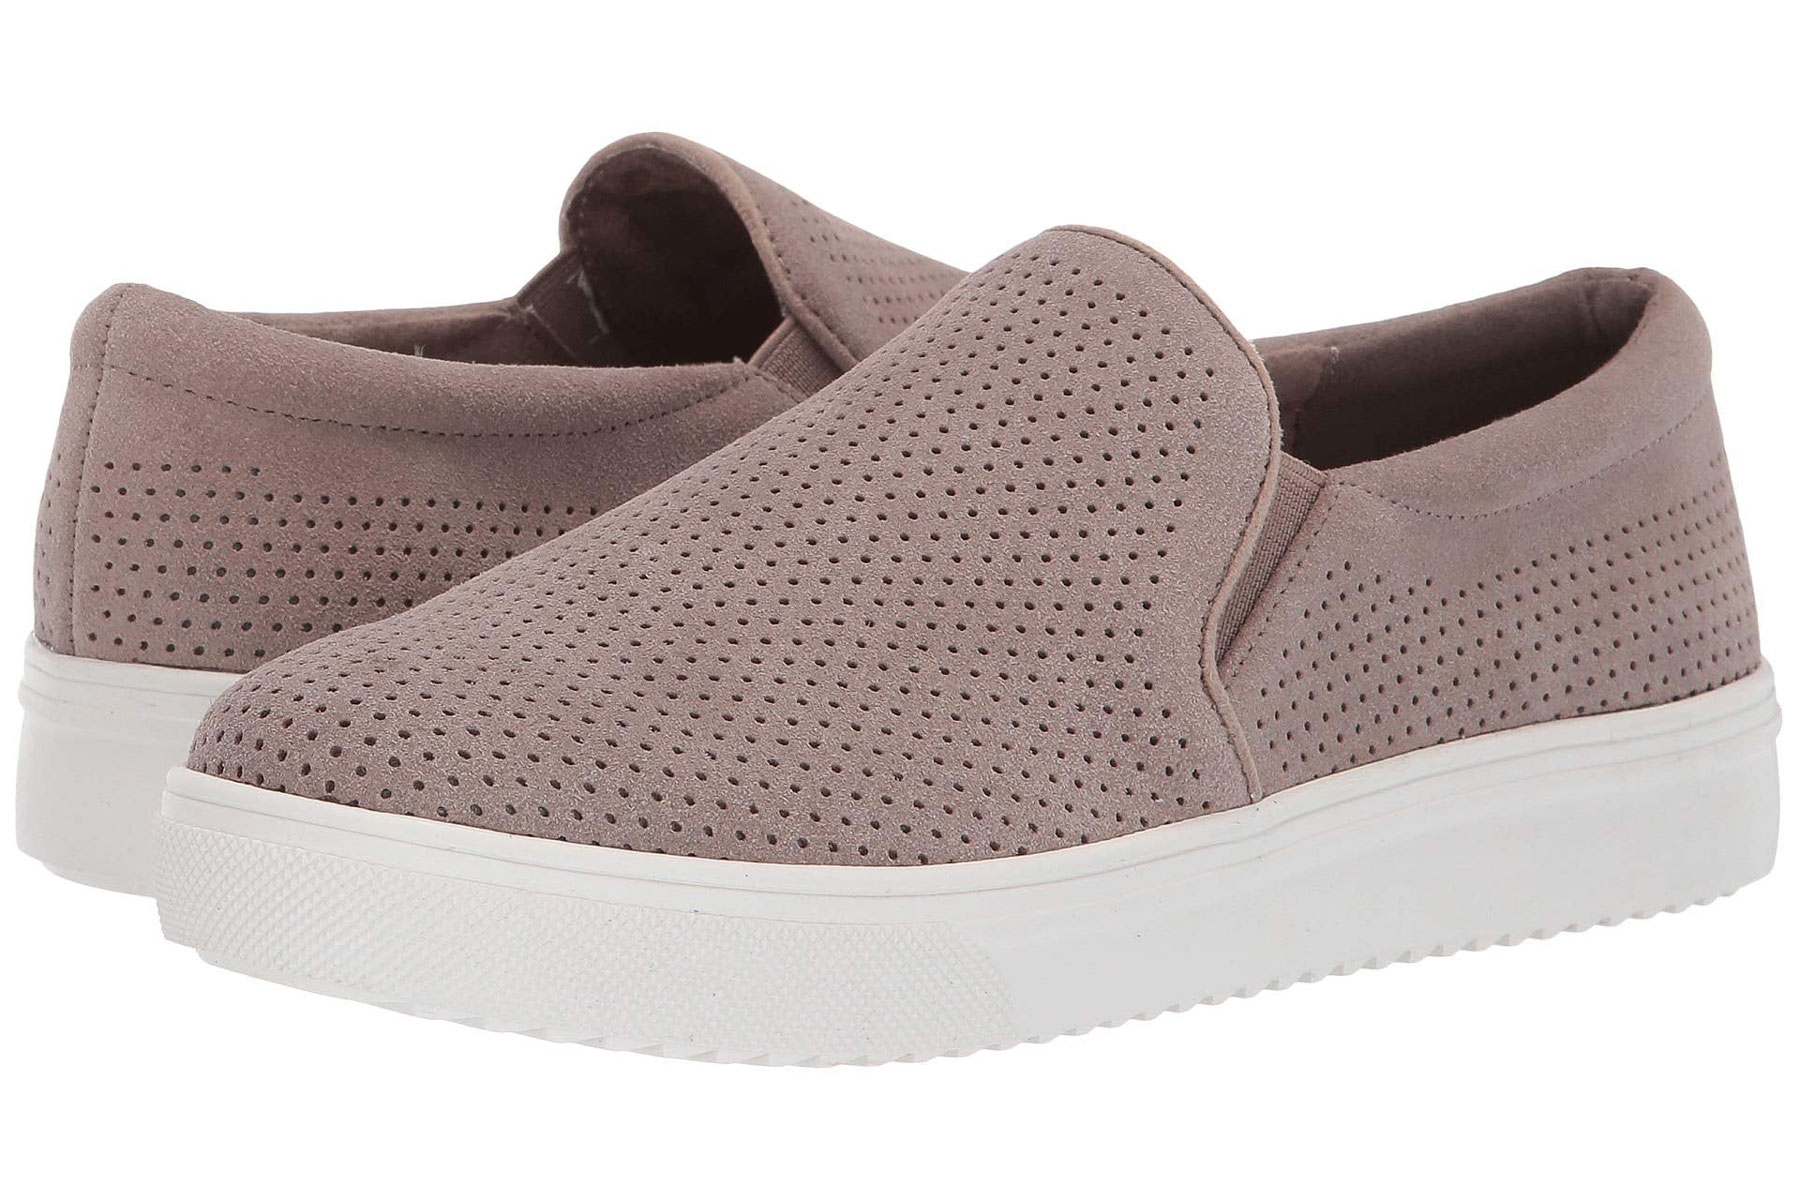 Pink/taupe suede slip on sneakers